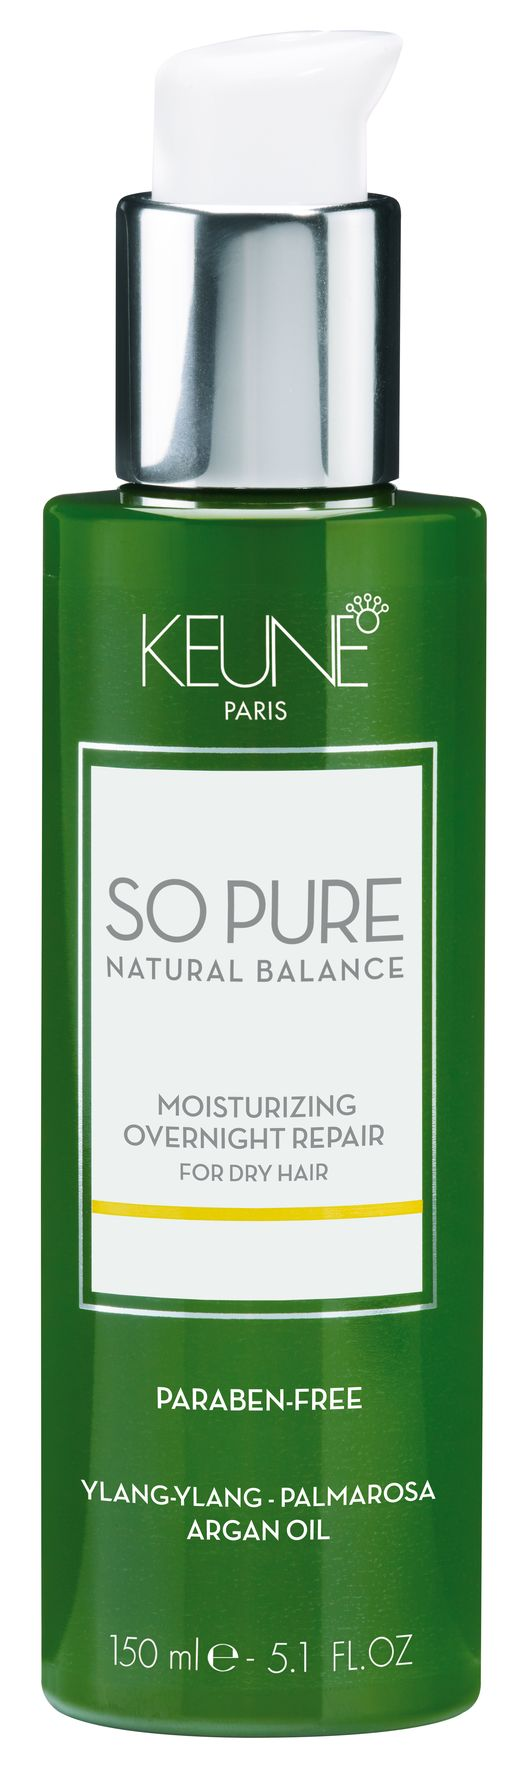 So Pure Moisturizing Overnight Treatment